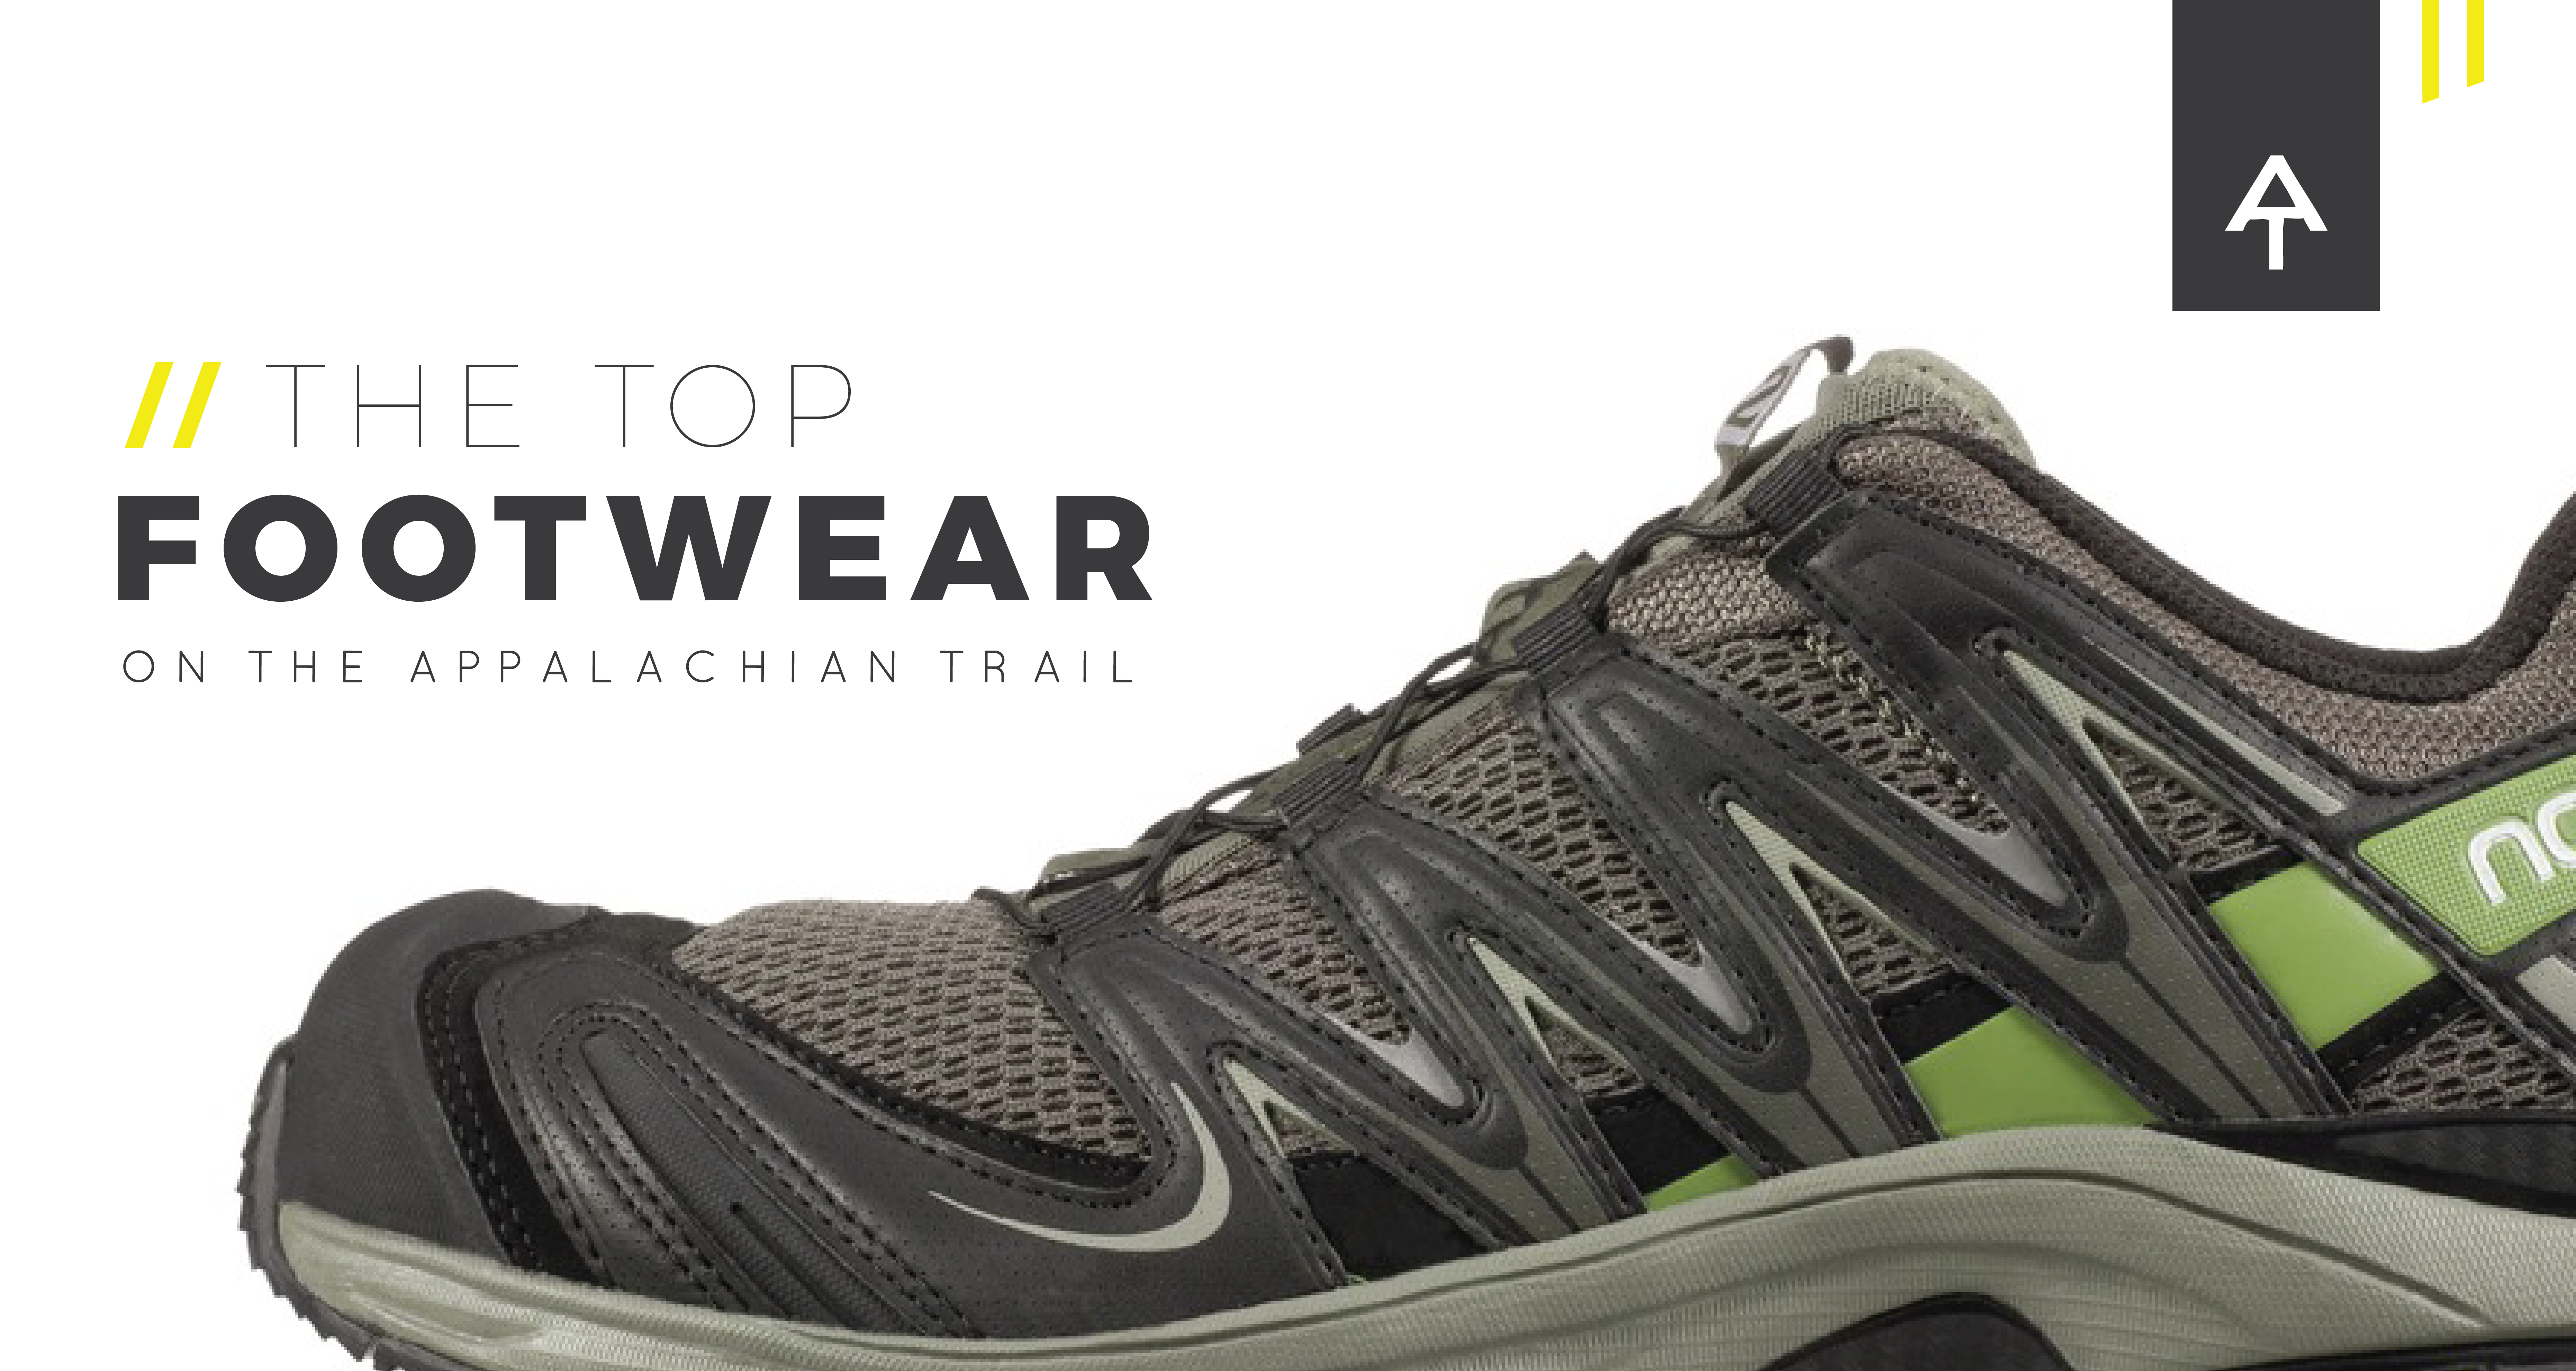 Trail Running Shoes Vs Hiking Shoes For Tavel